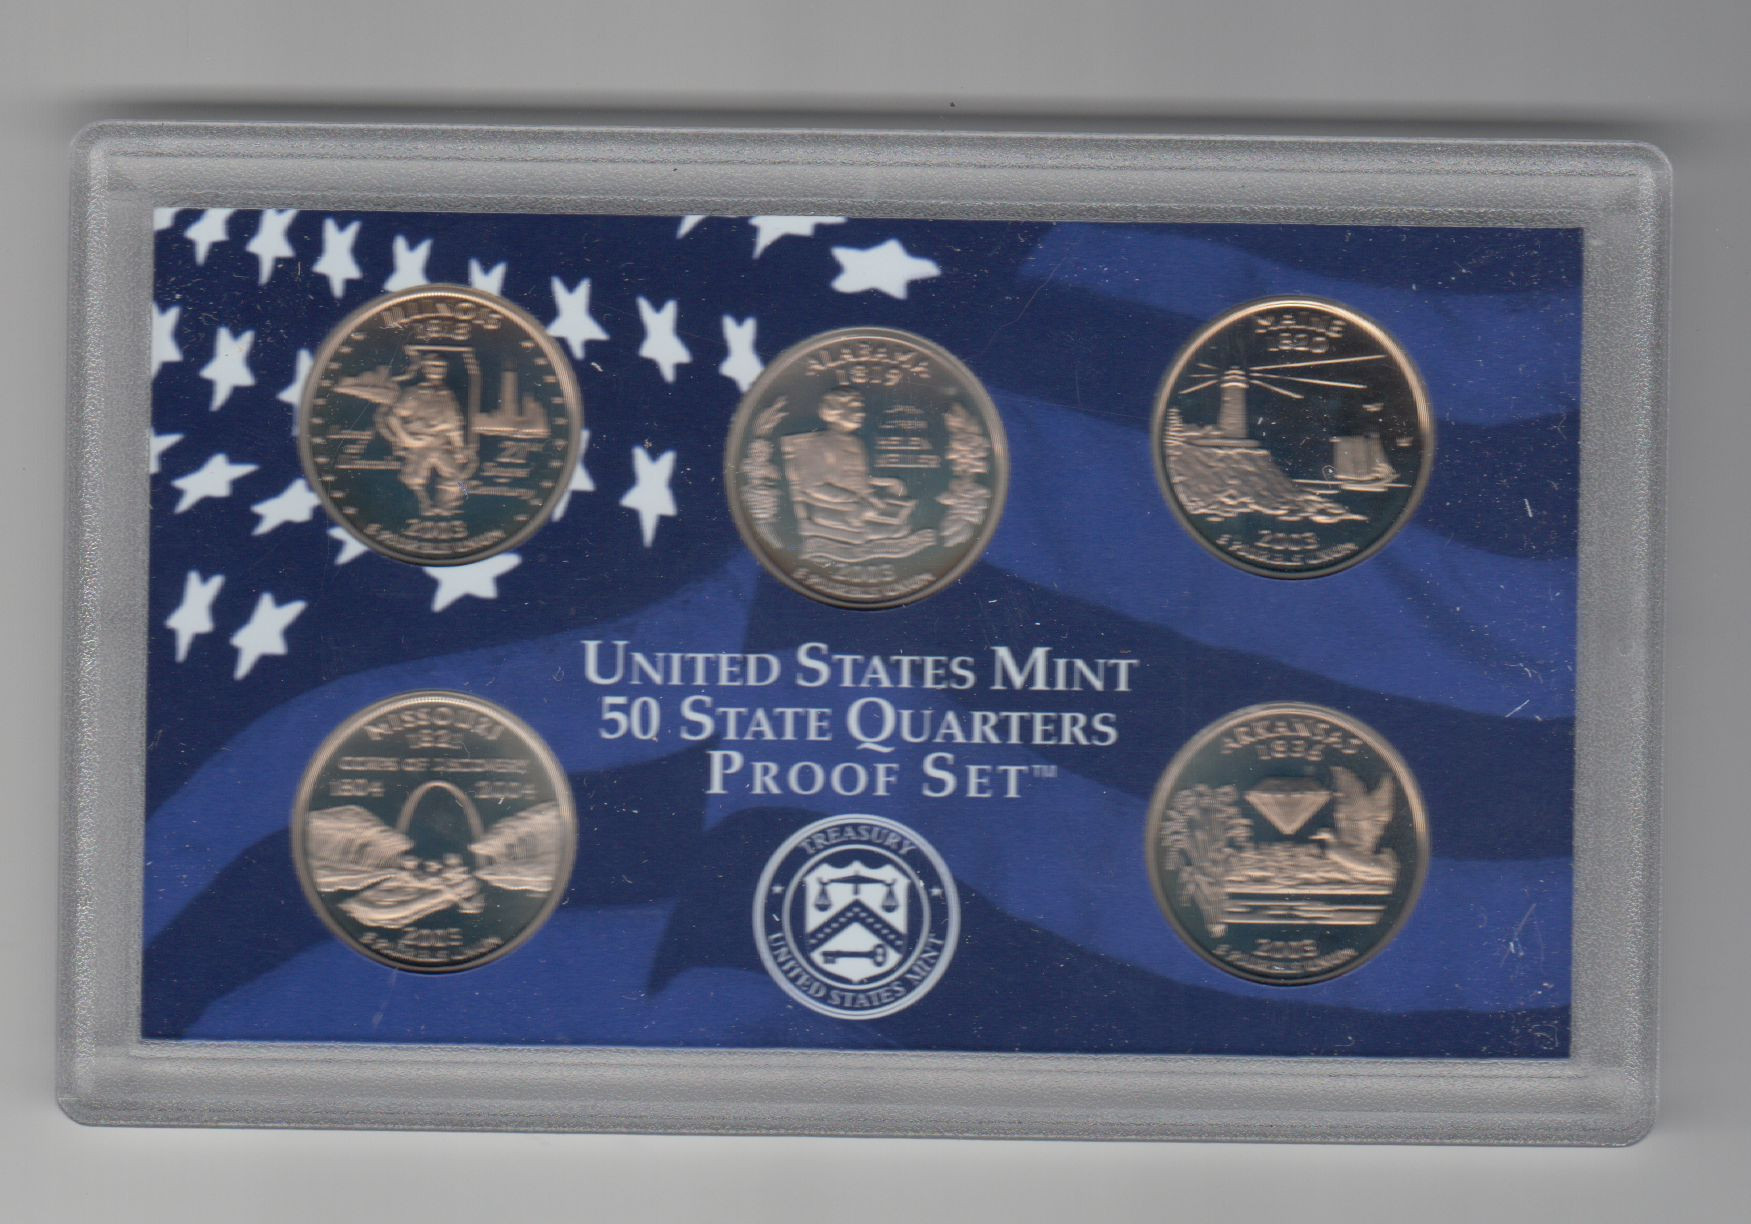 Elegant Value Of 5 Coins 50 State Quarters Proof Set In Box with State Quarter Set Value Of New Washington 50 State Quarters Program 1999 2008 State Quarter Set Value